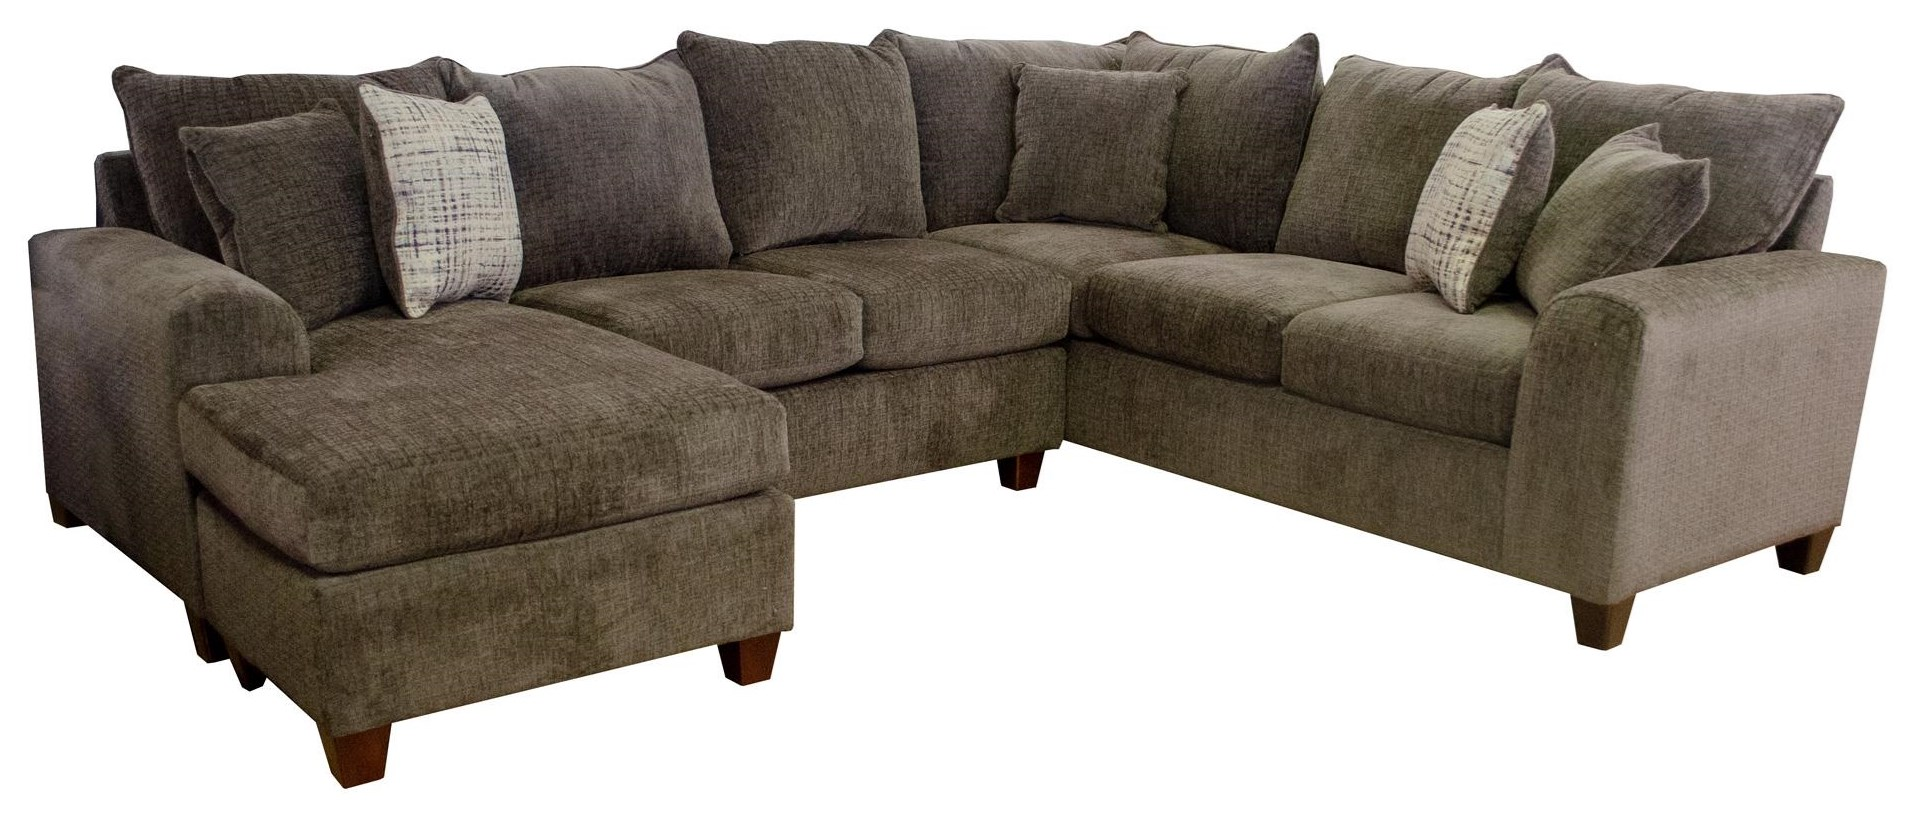 Seminole Furniture 237 Ultimate Chocolate Sectional Sofa - Item Number: GRP-237-PUTTY-SECTIONAL